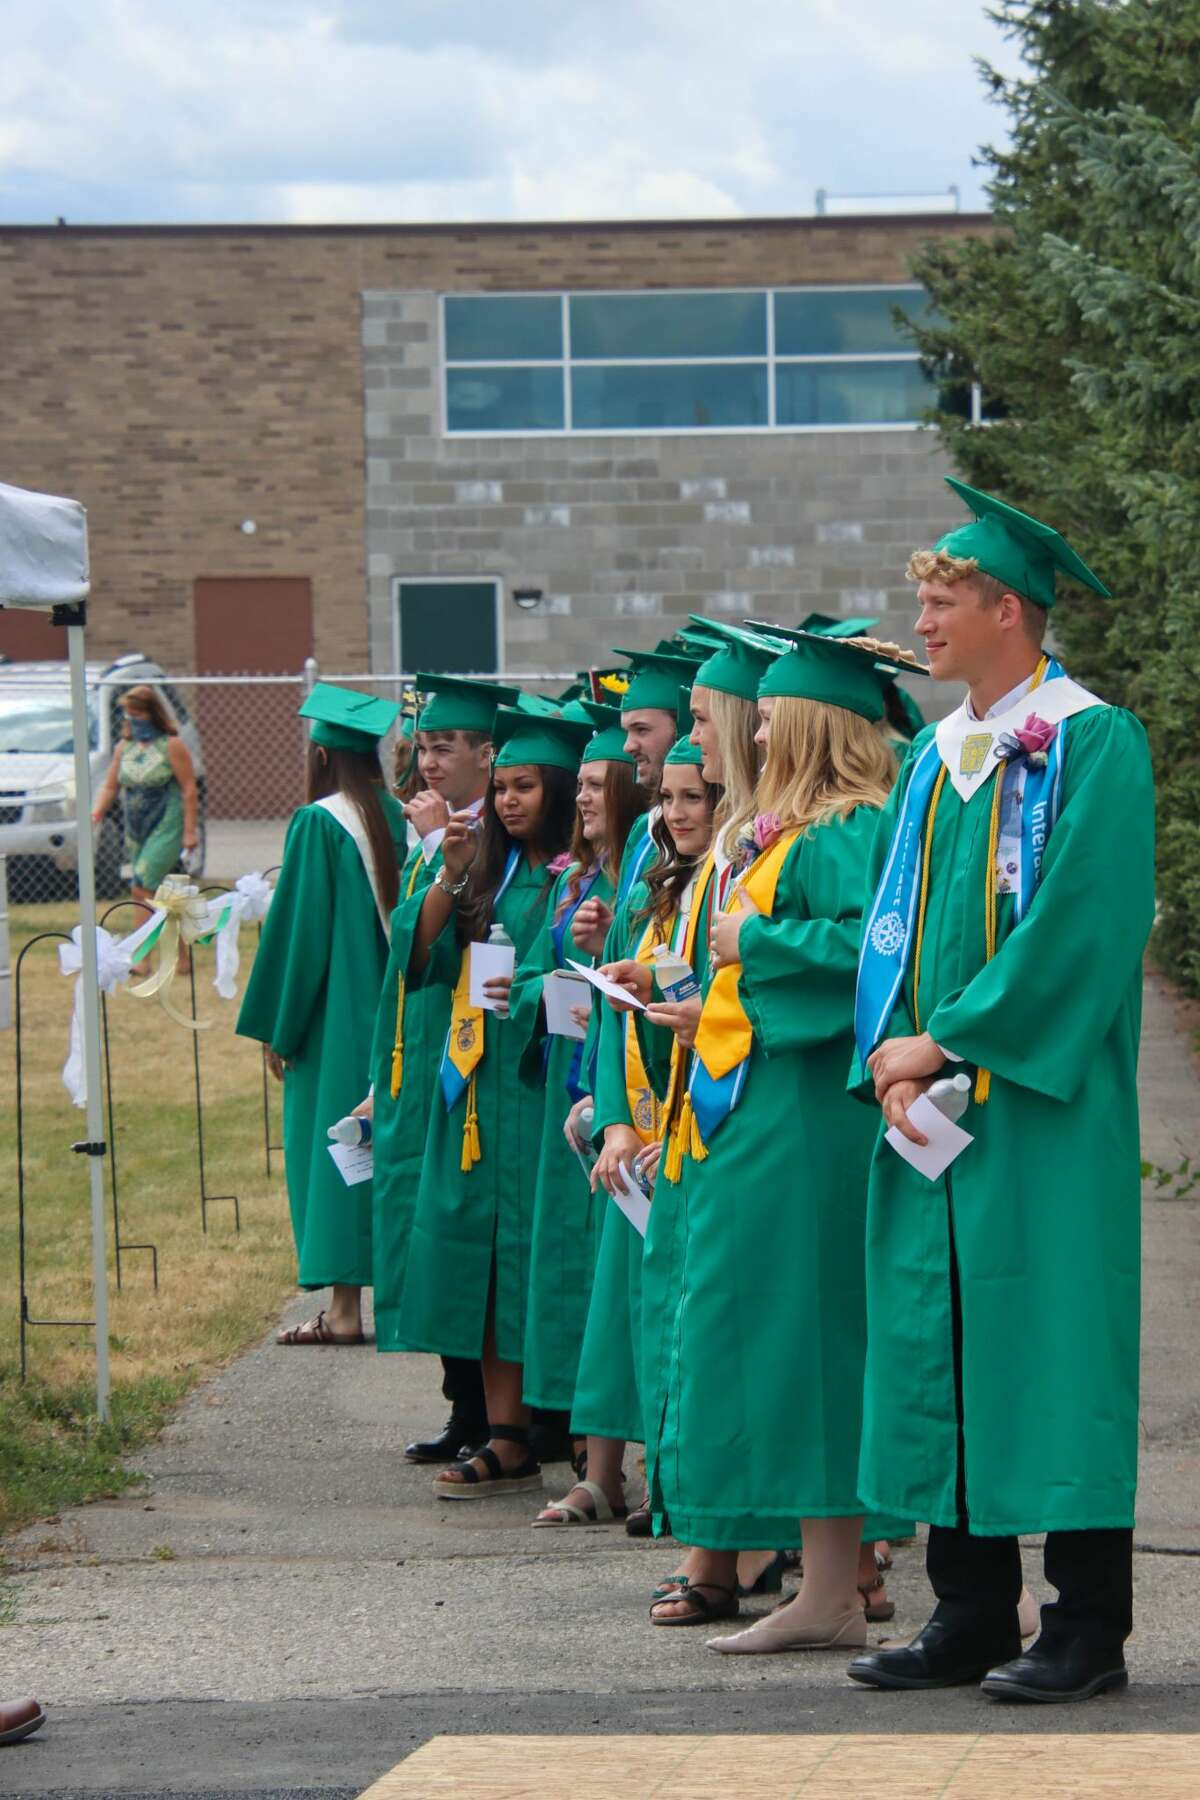 Laker High School faculty, families and graduates were welcomed by blue skies and beautiful weather as they celebrated the graduating class of 2020.